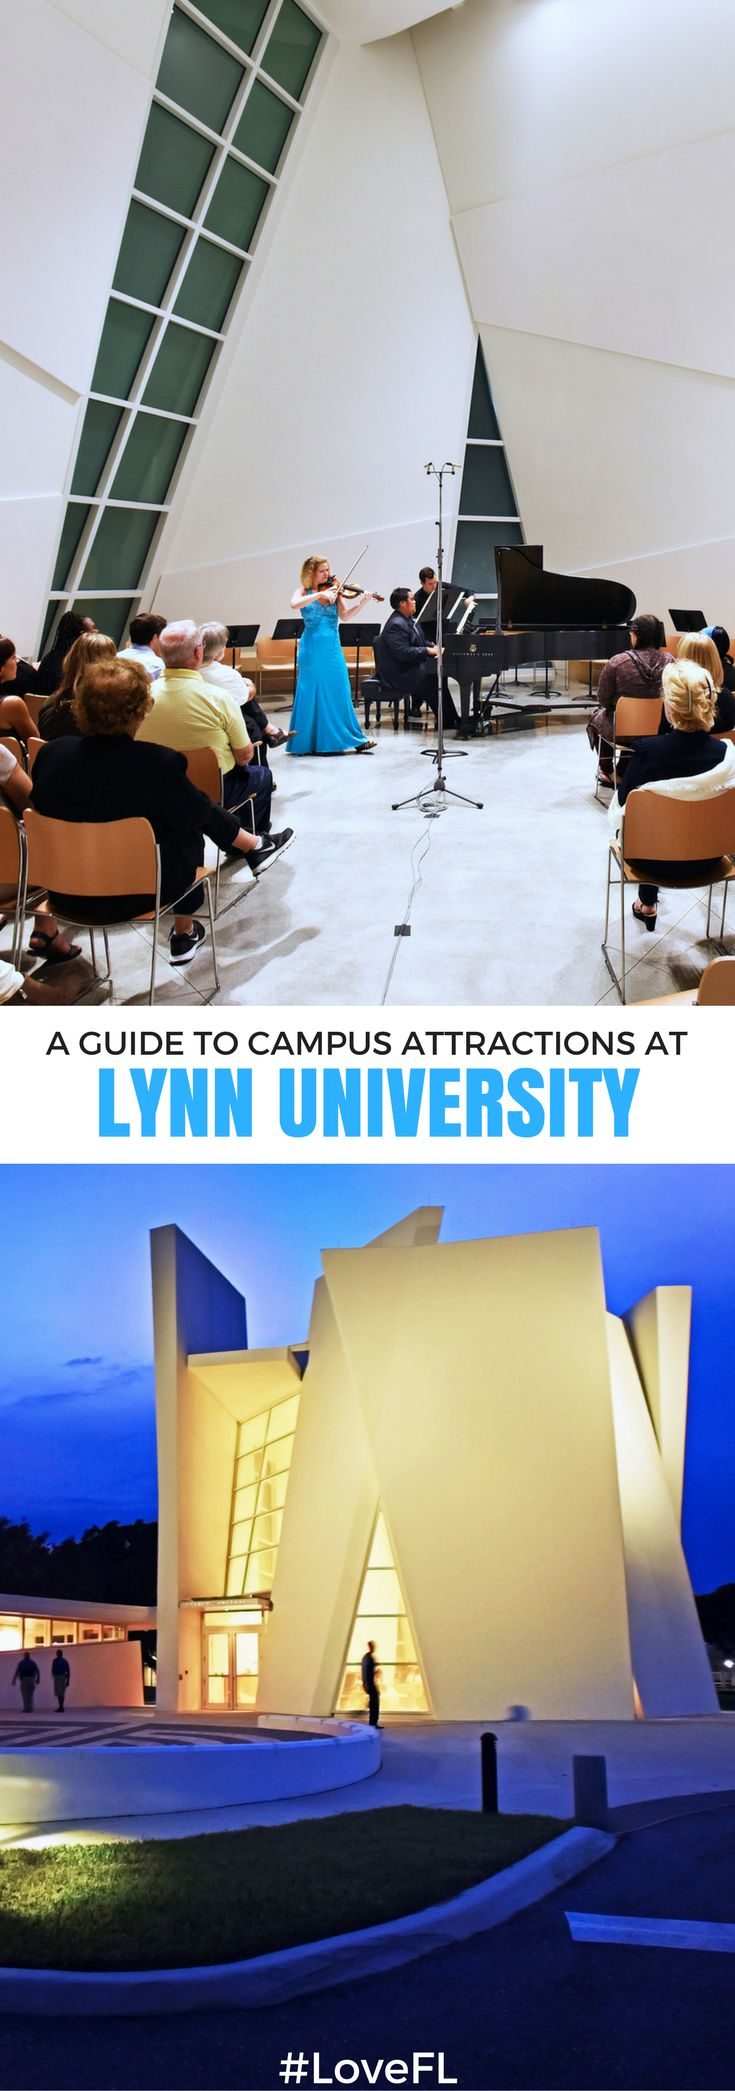 A Guide to Campus Attractions at Lynn University | #Florida #College #Travel